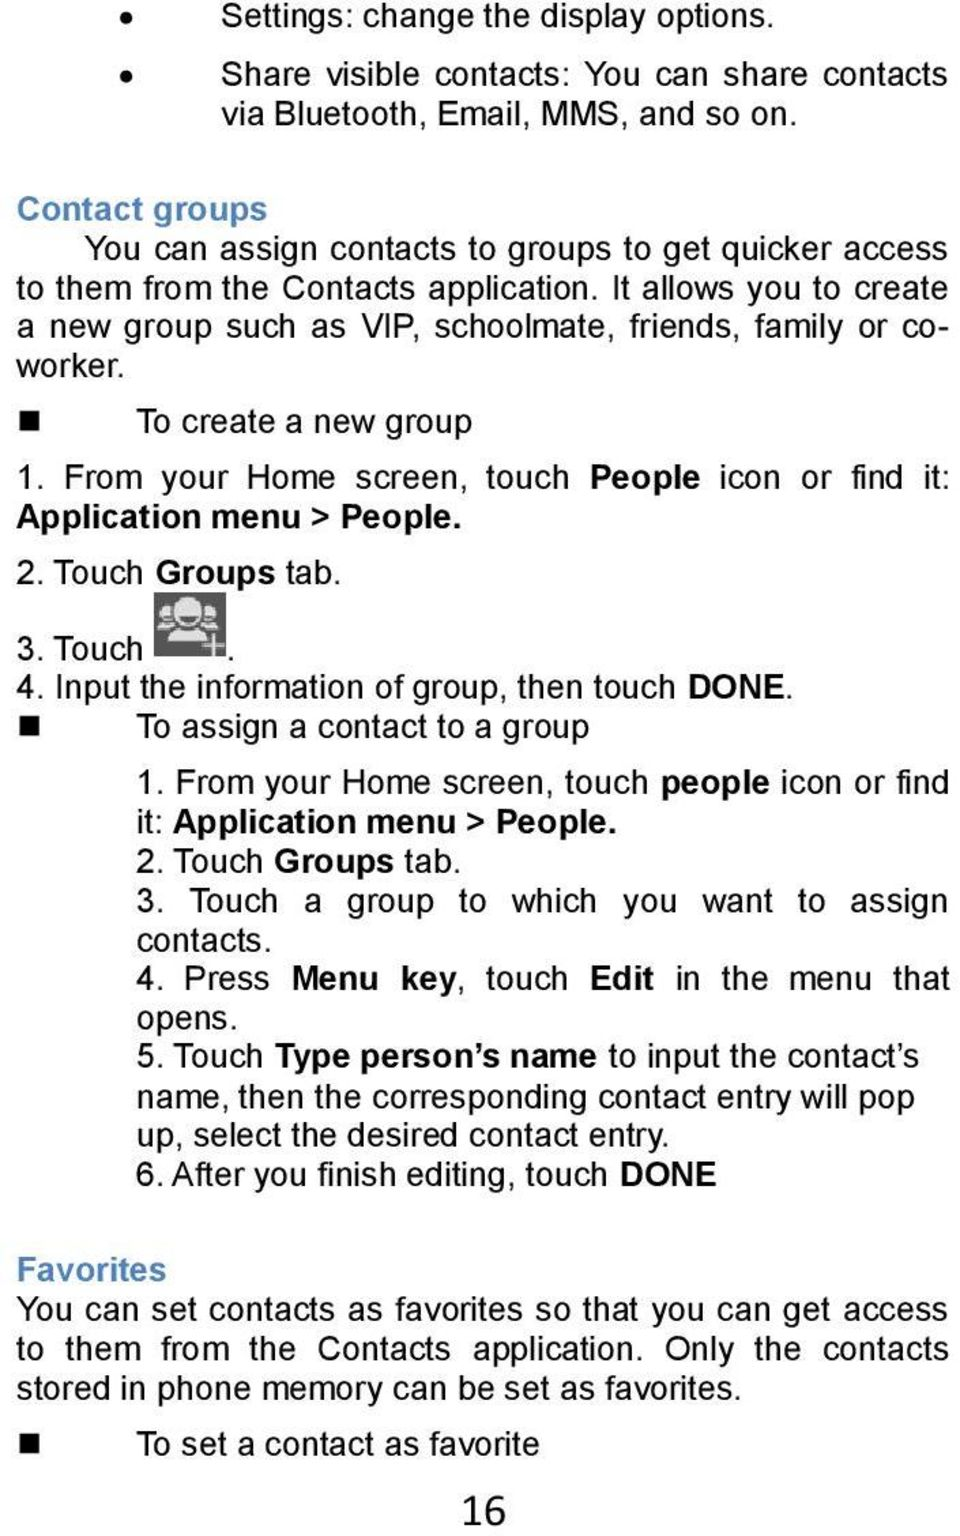 To create a new group 1. From your Home screen, touch People icon or find it: Application menu > People. 2. Touch Groups tab. 3. Touch. 4. Input the information of group, then touch DONE.